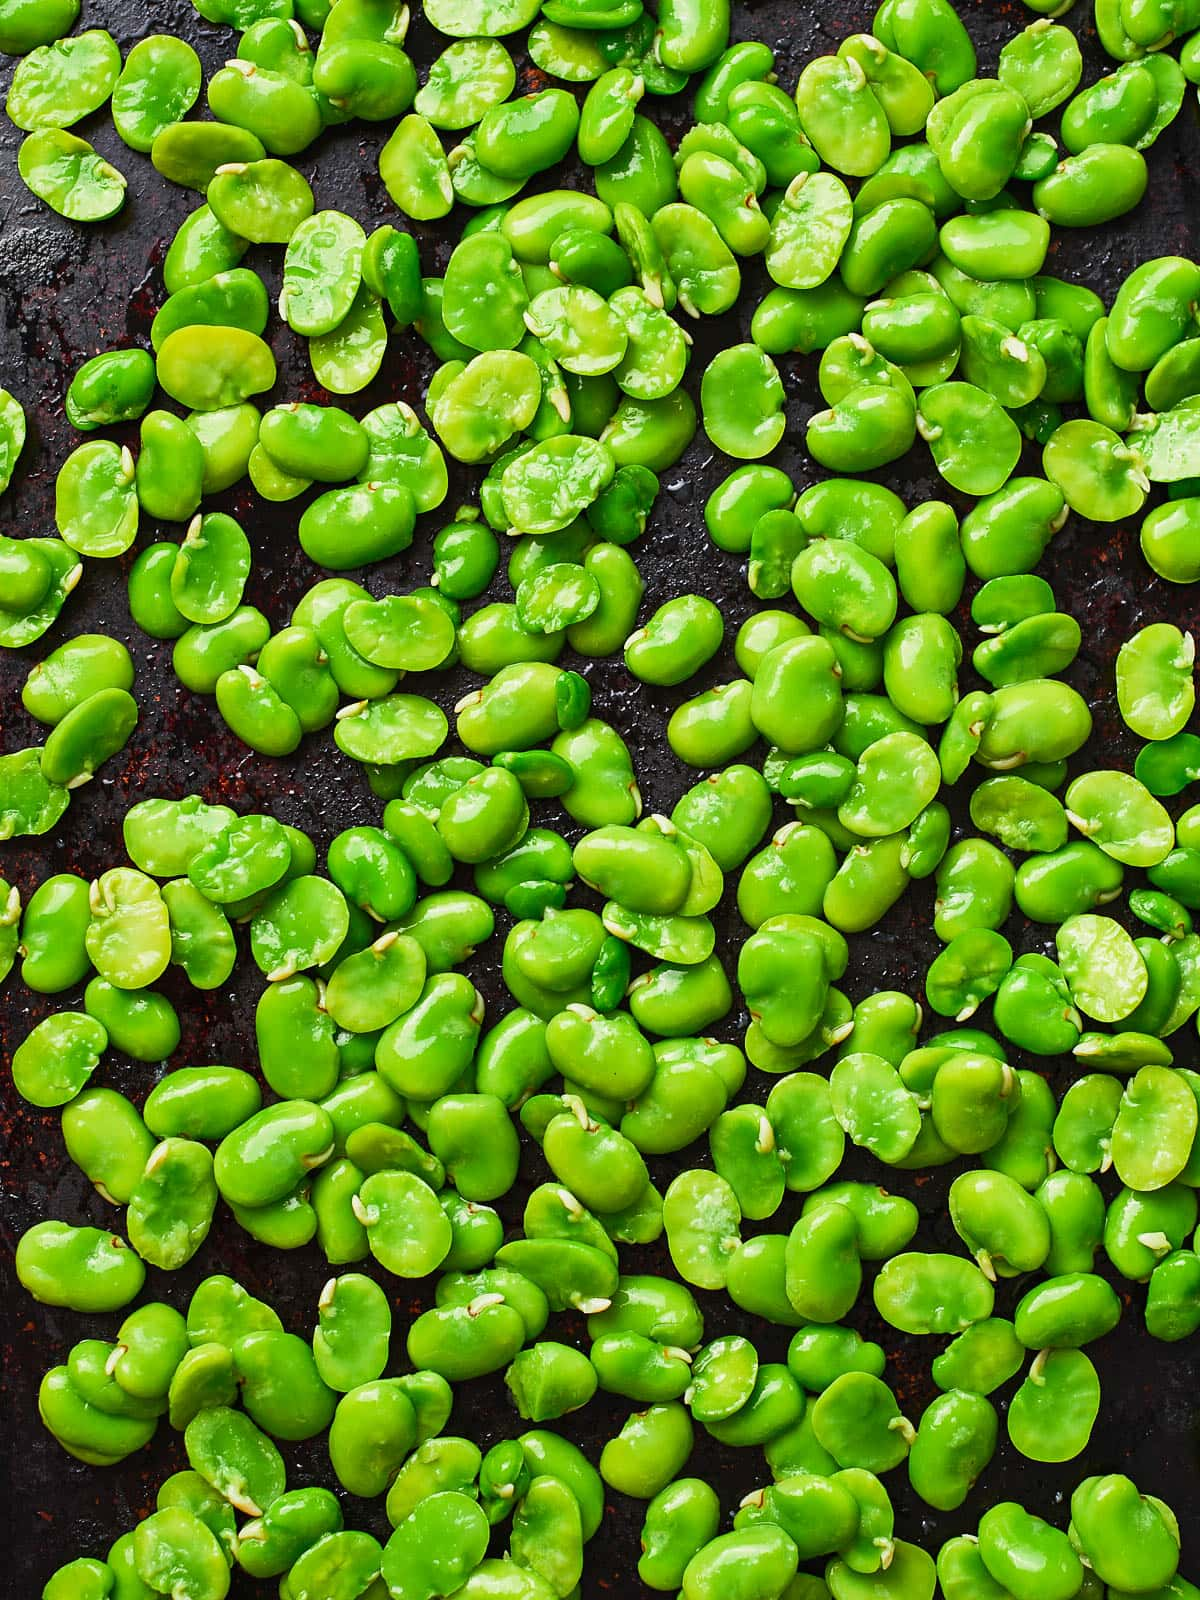 Broad beans on a baking tray